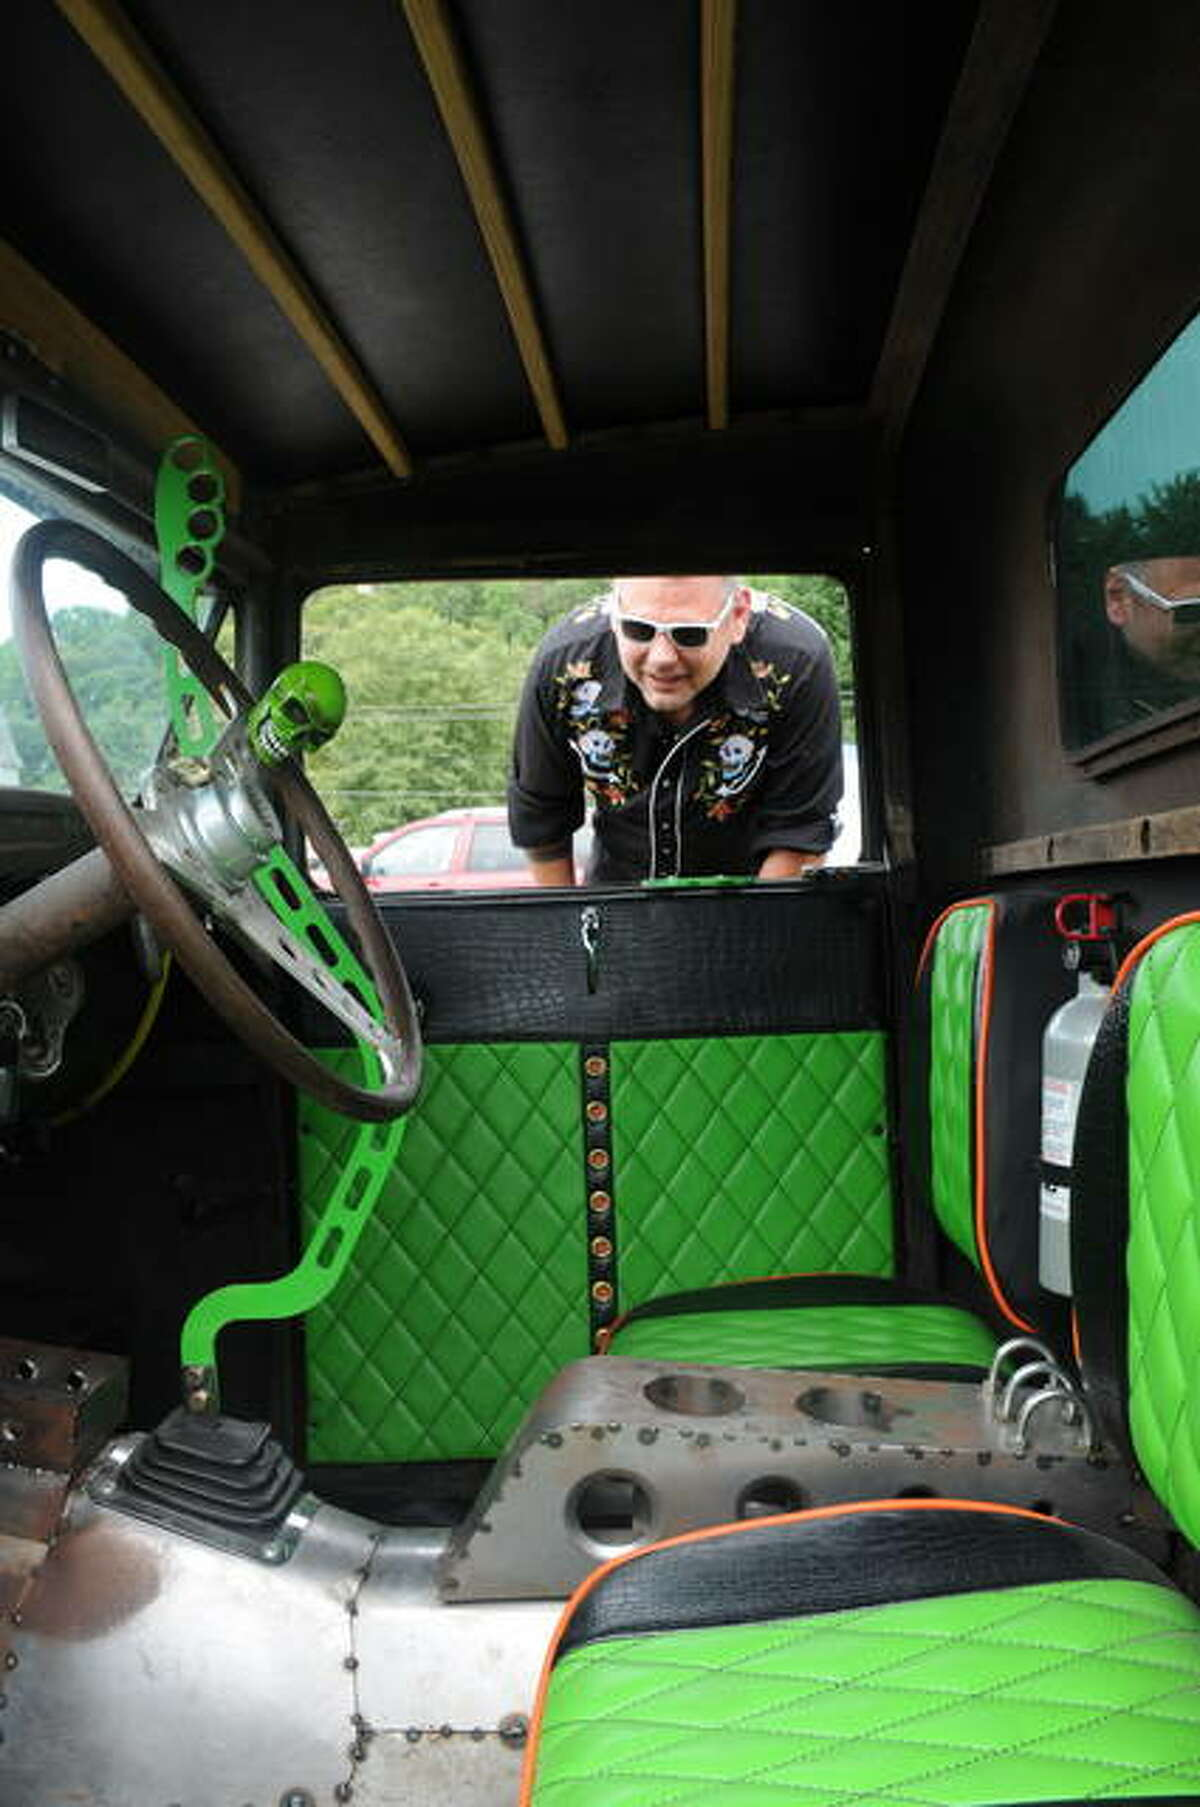 Joe Kozuszek of Belleville admires the interior of an entry in Saturday's Rat Rod Show in Grafton.